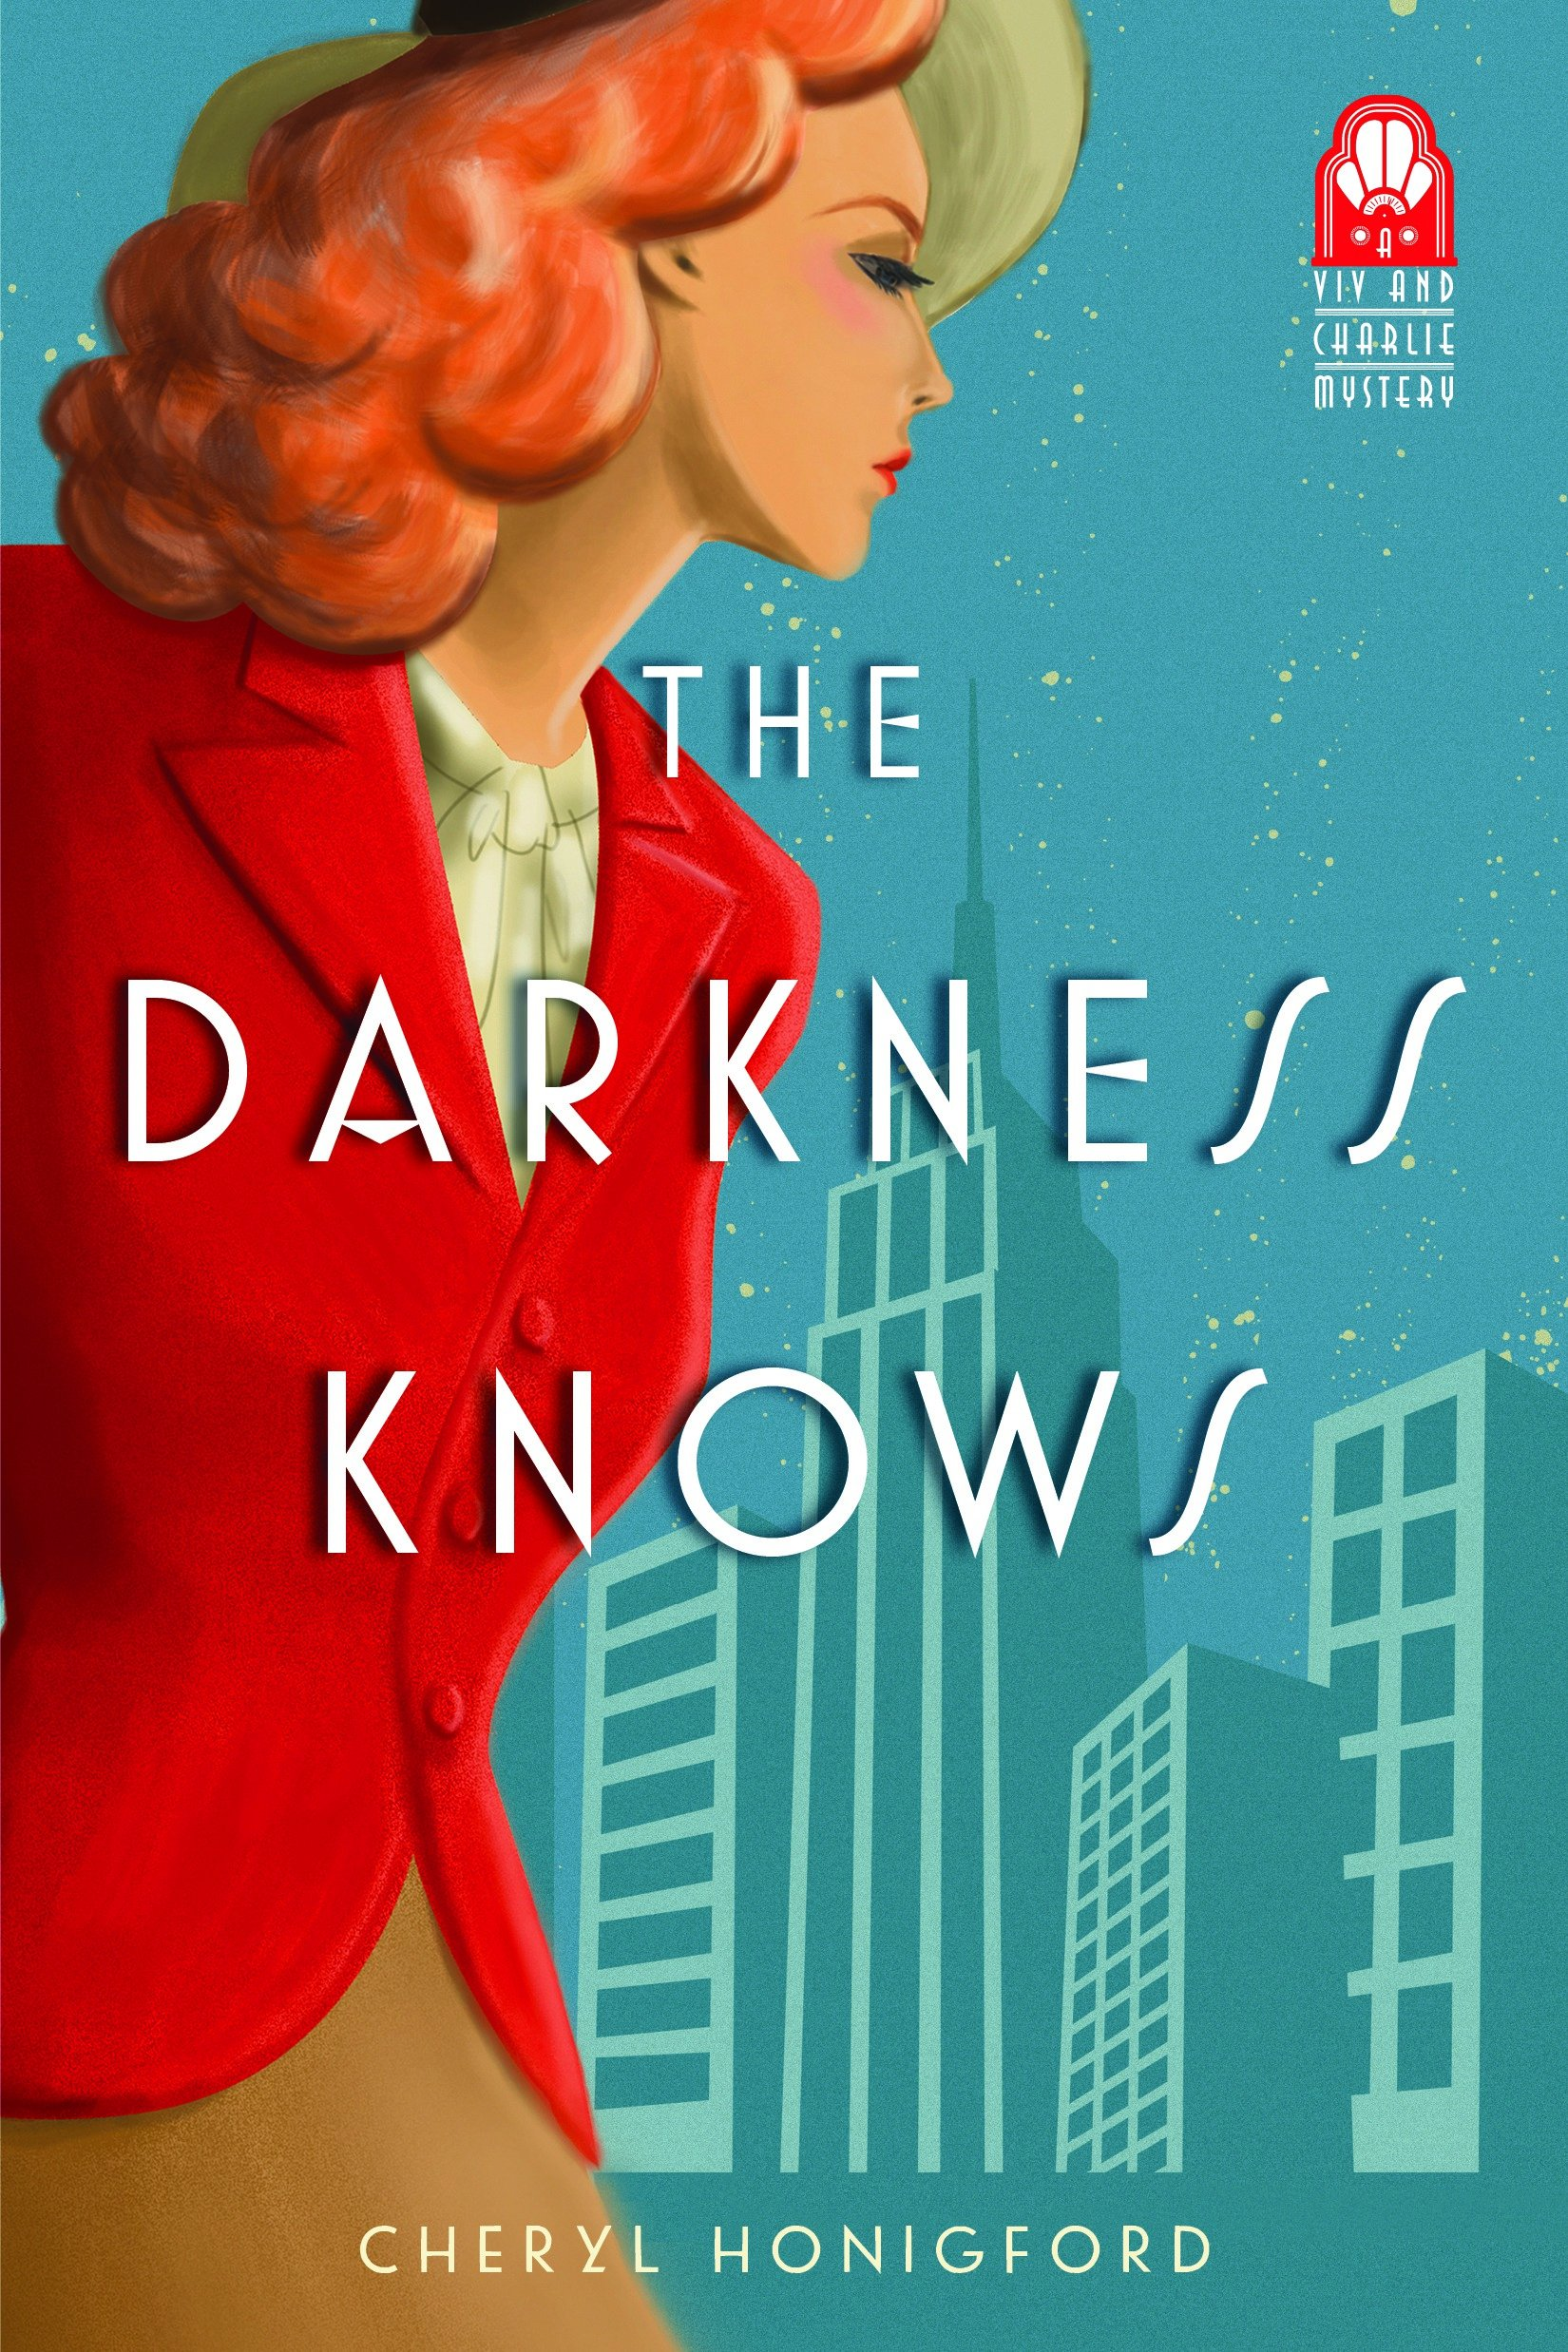 The Darkness Knows: 0 (Viv and Charlie Mystery, 1): Amazon.es ...